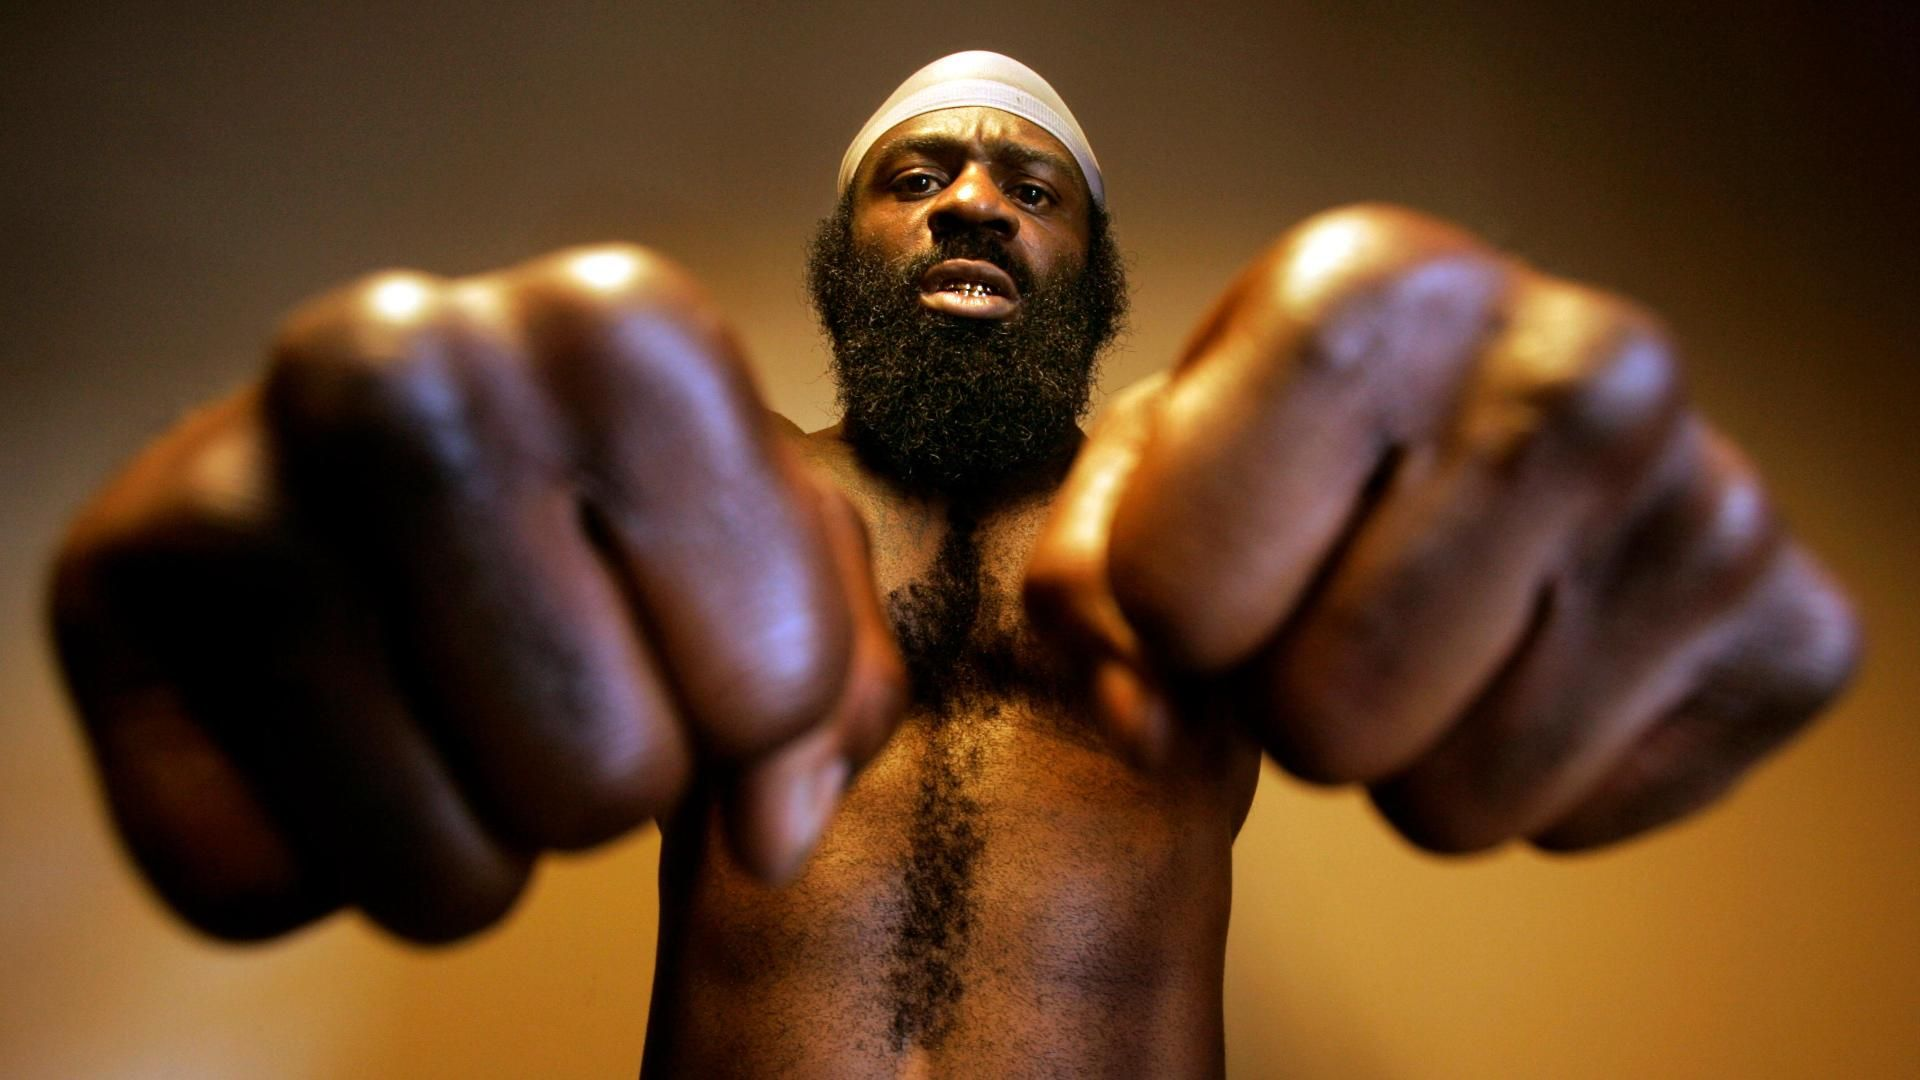 Kimbo Slice: A fighter until the end